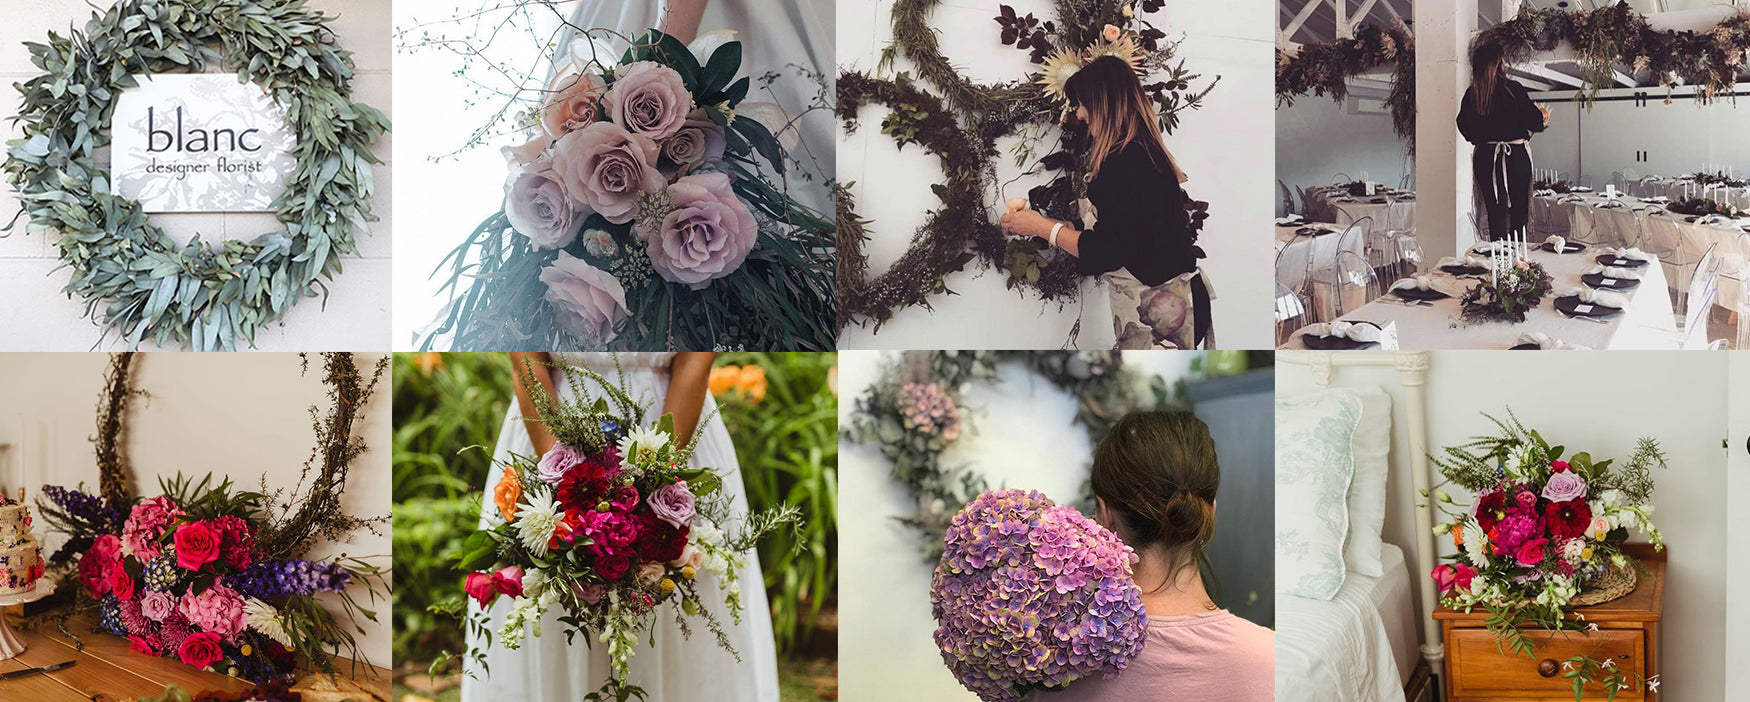 Weddings by Blanc Tauranga Florist